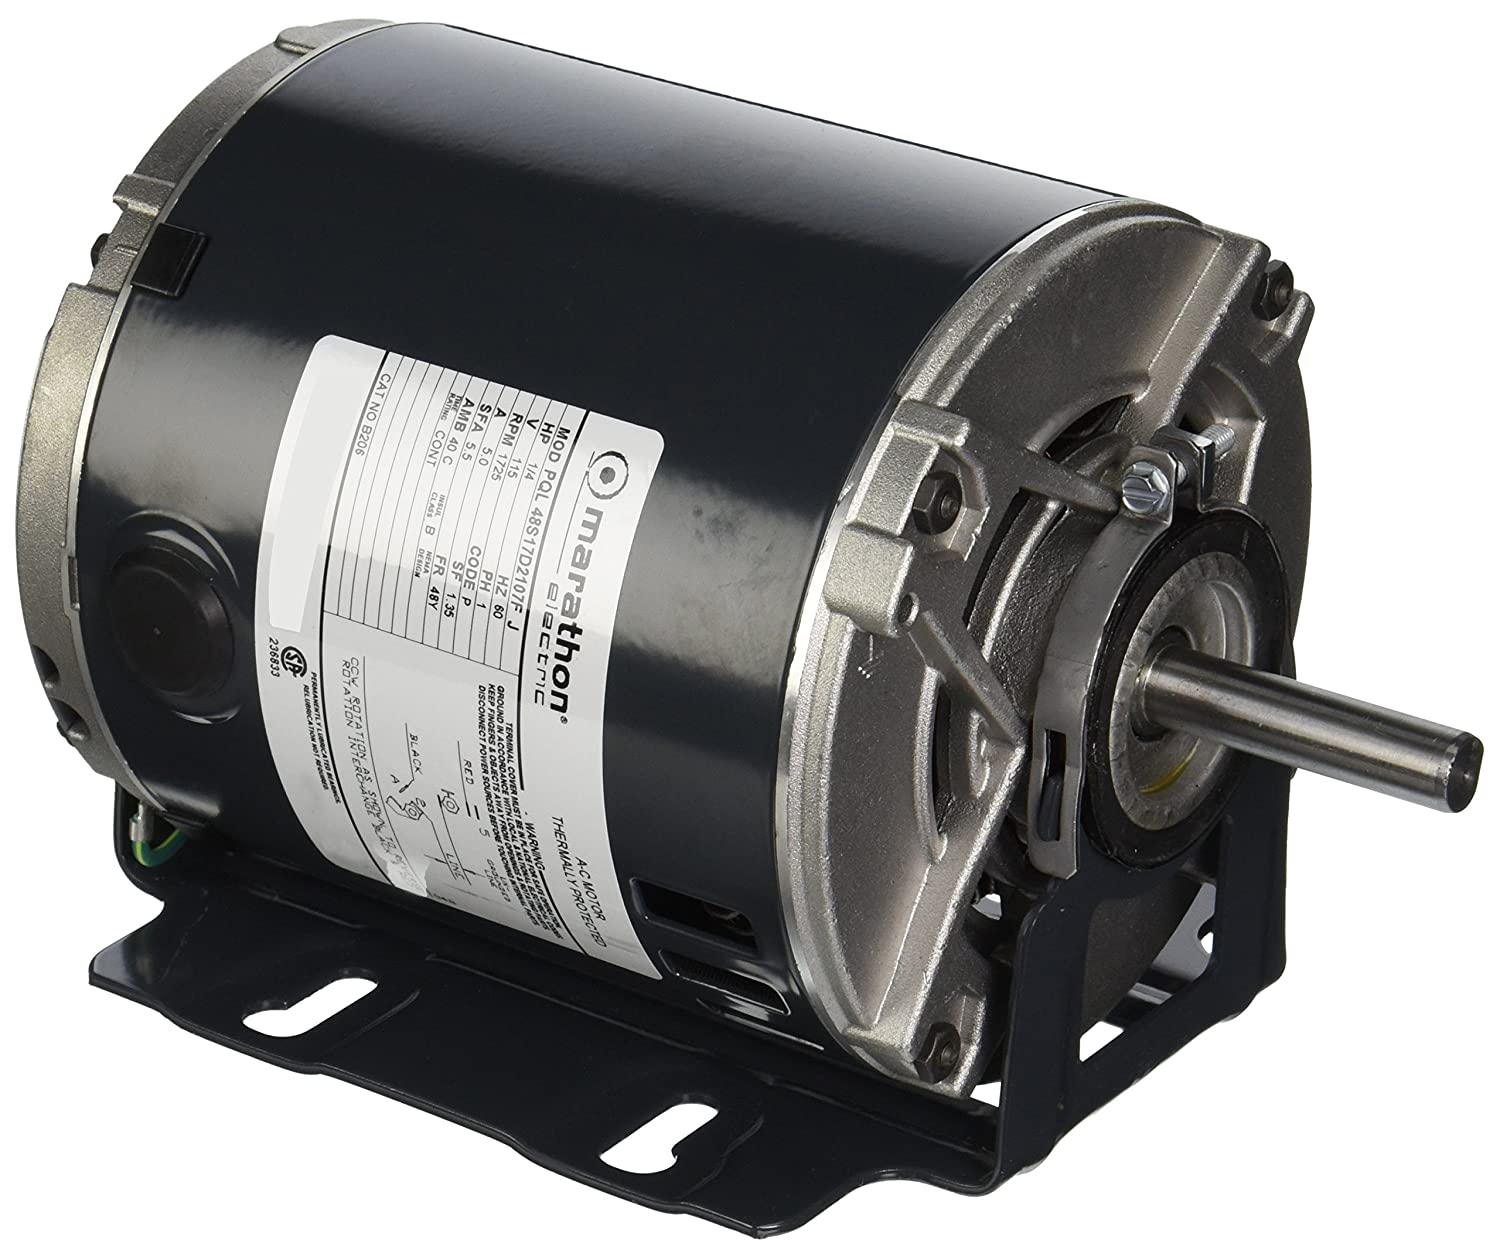 Marathon B206 Belt Drive Blower Motor, Single/Split Phase, C-Dimension - 9.62, 1/4 hp, 1725 RPM, 115V, 5 amp